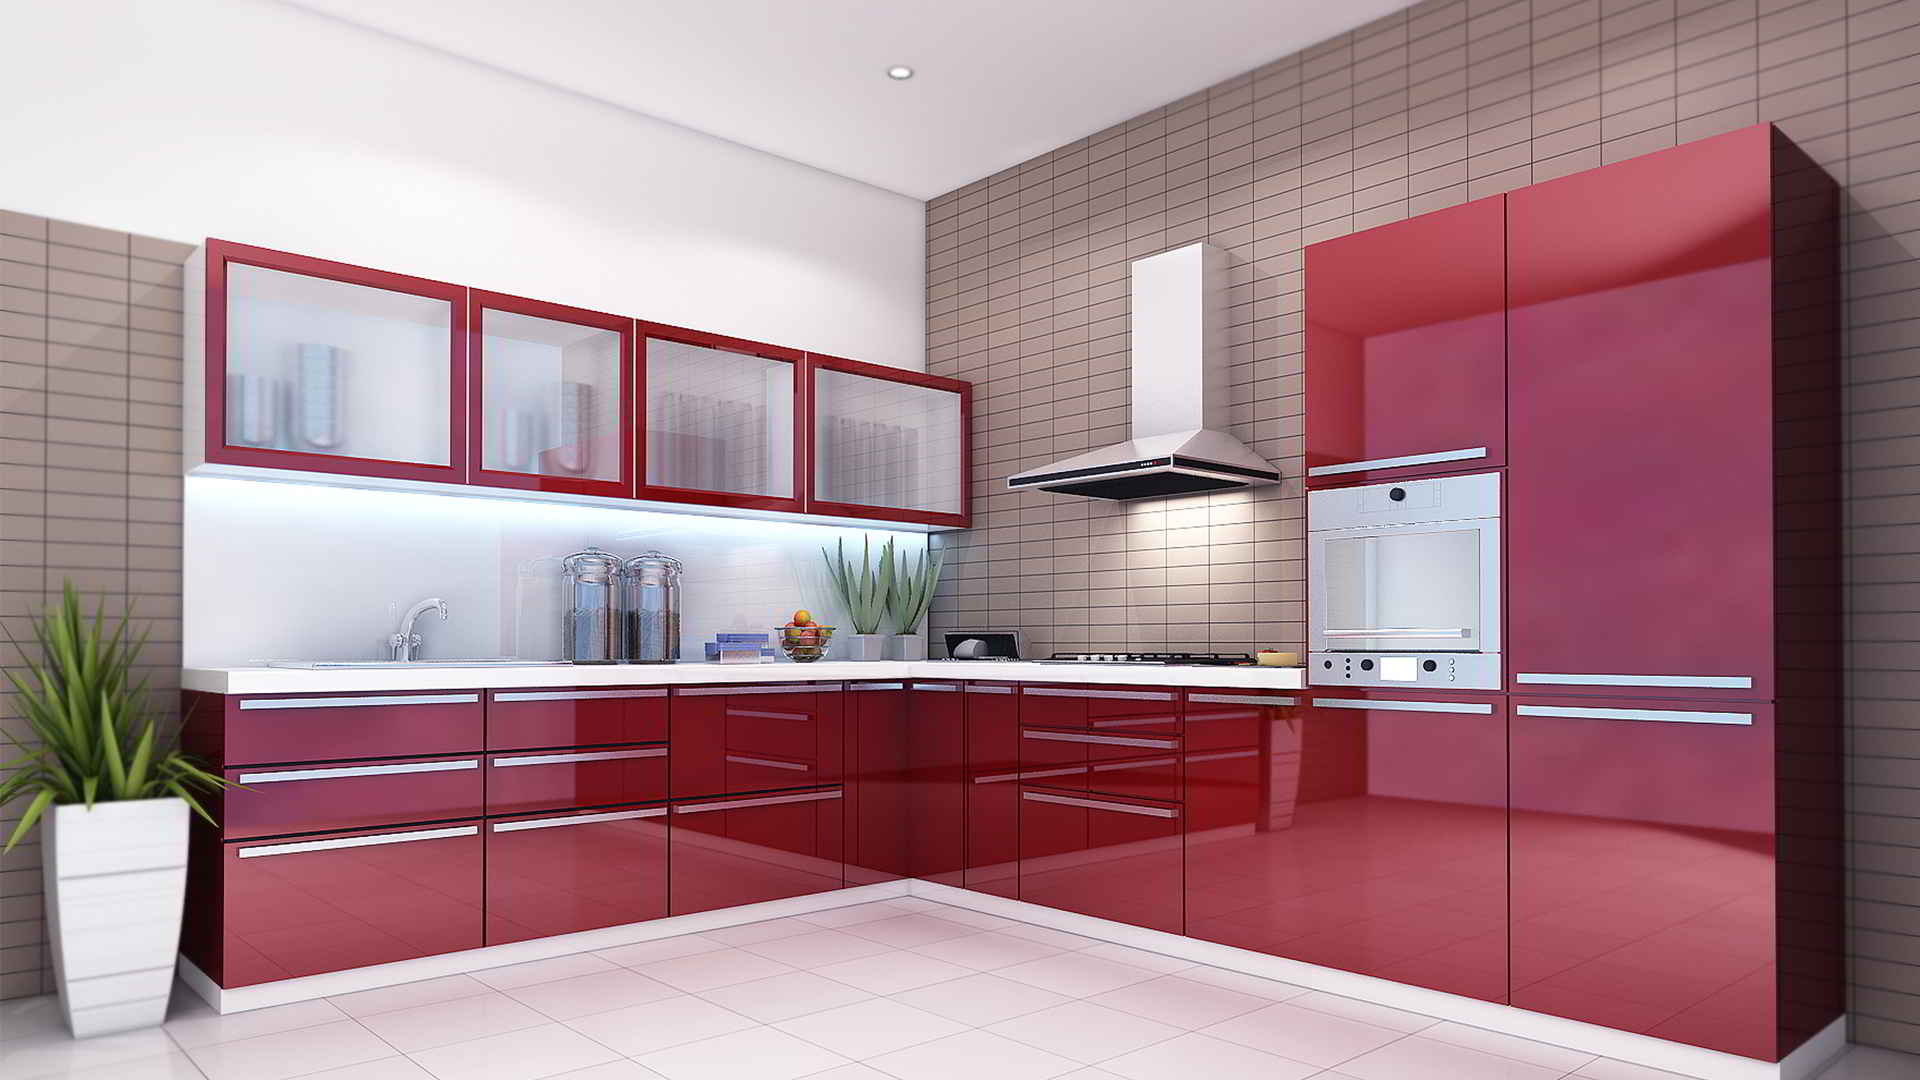 25 latest design ideas of modular kitchen pictures images catalogue. Black Bedroom Furniture Sets. Home Design Ideas